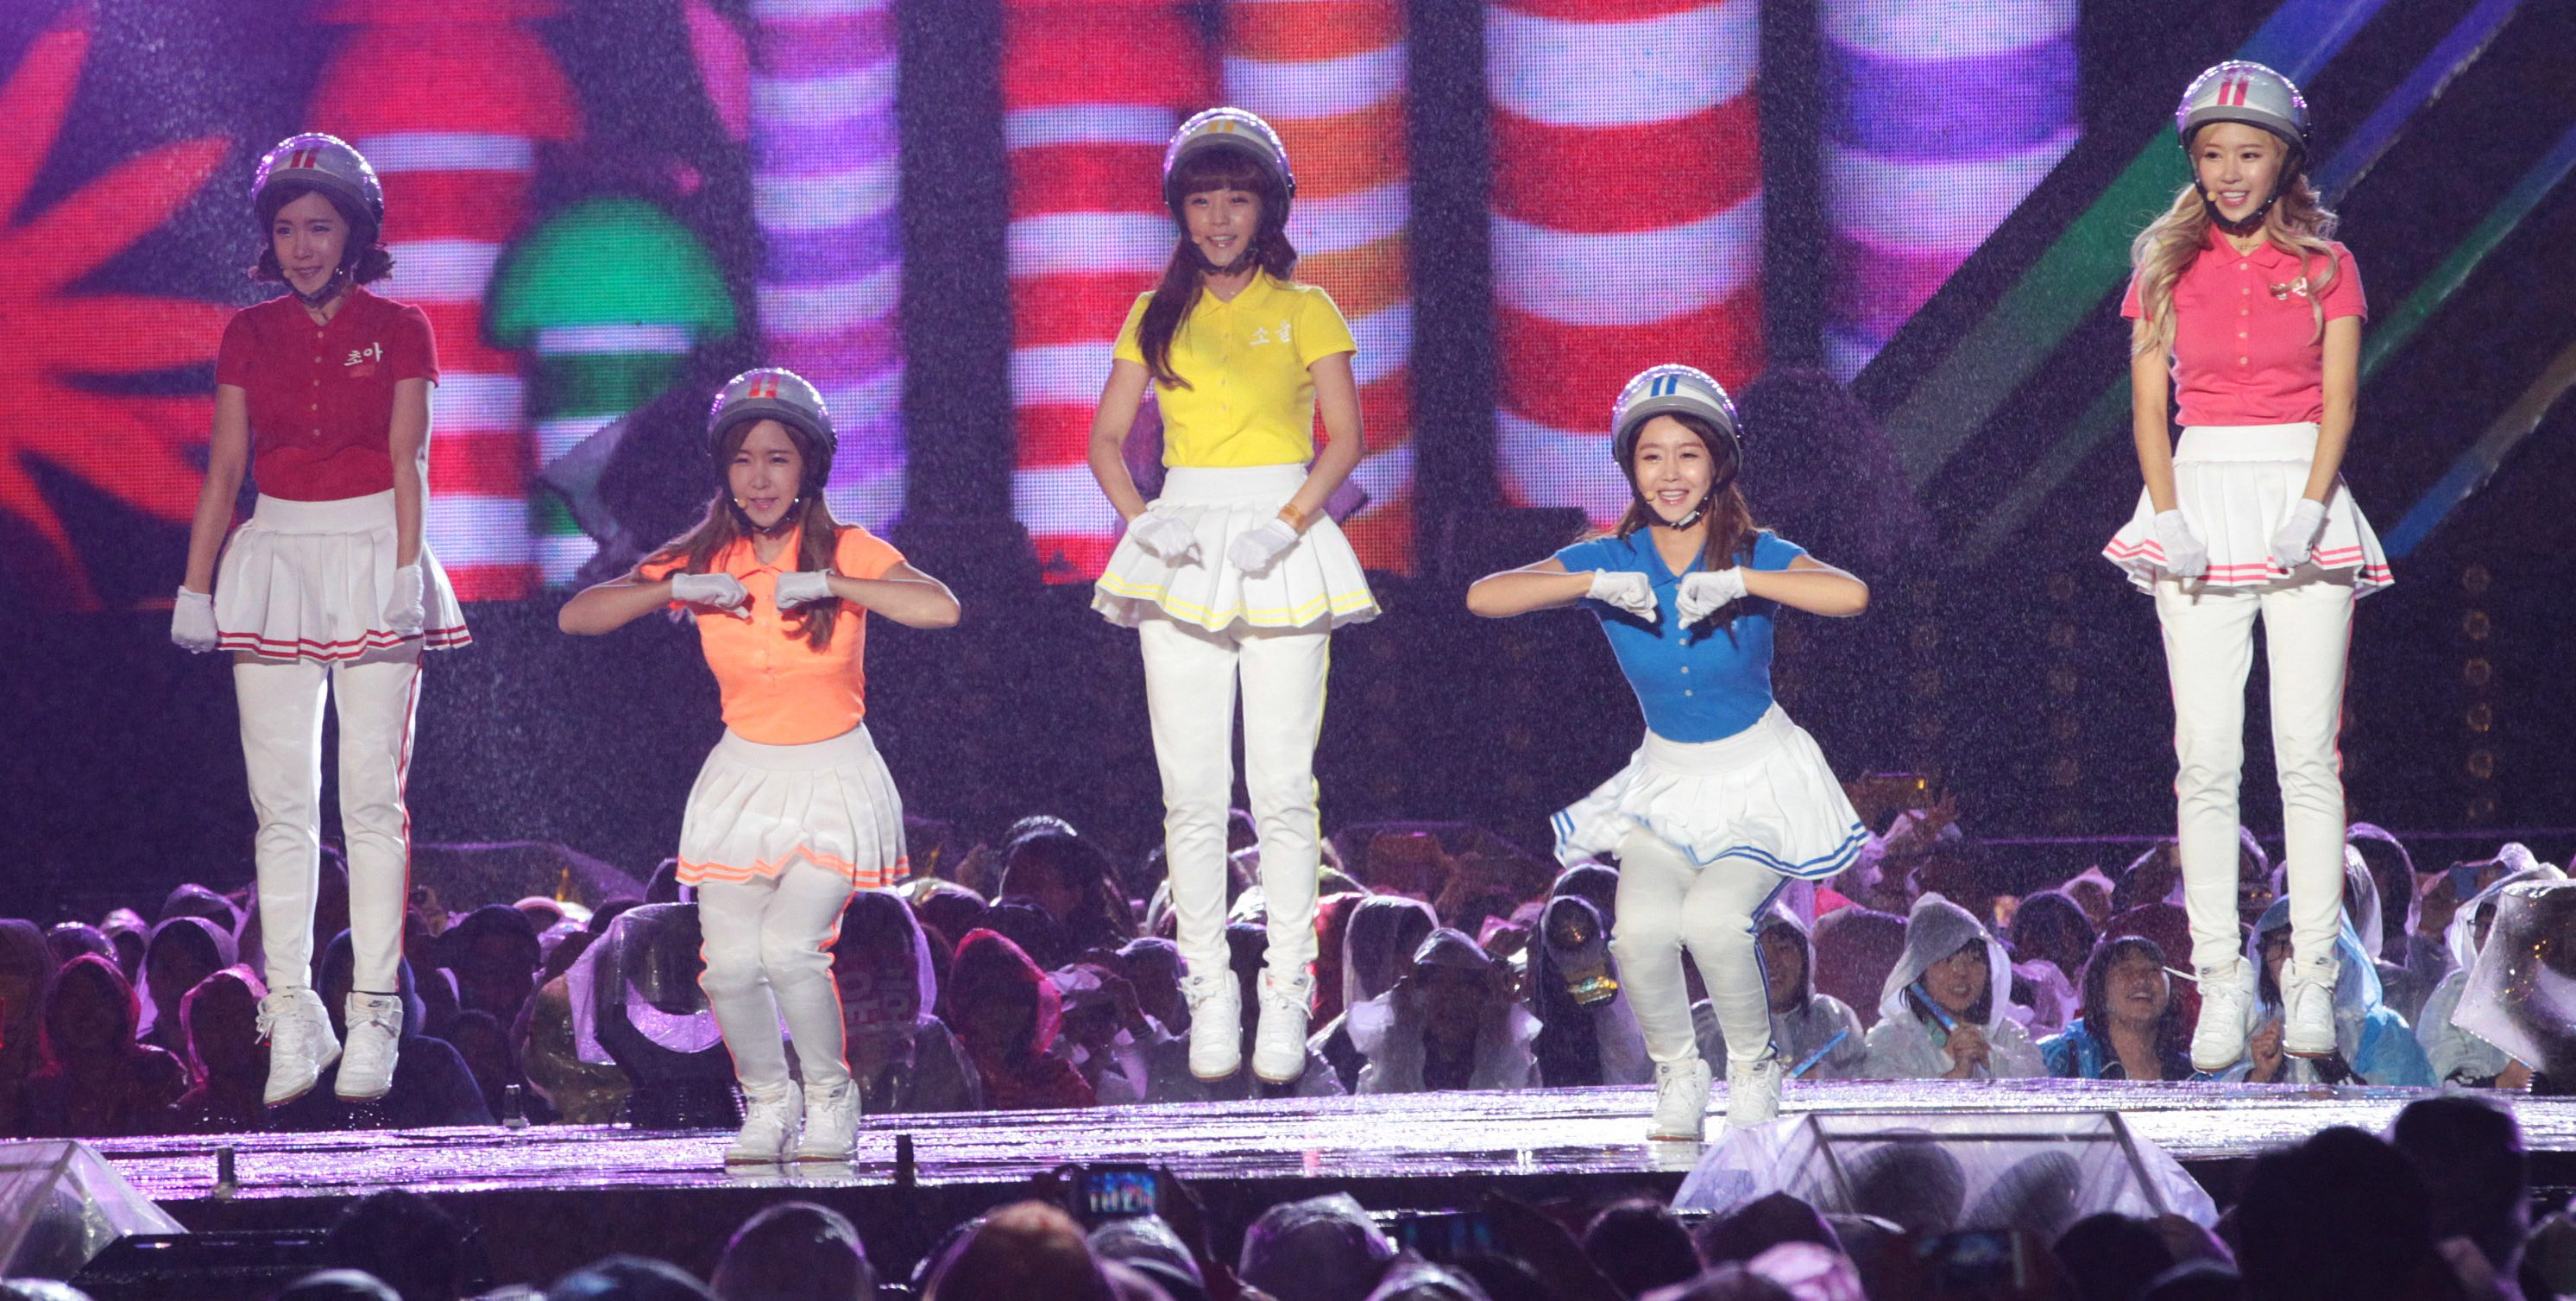 South Korean K-Pop girl group Crayon Pop performs during Hallyu Dream Concert in Gyeongju, South Korea, Sunday, Oct. 6, 2013.  The fourth annual two-day Hallyu Dream Festival is set to launch its K-pop-filled events ending Oct. 6 with some top South Korean pop acts. (AP Photo/Ahn Young-joon)